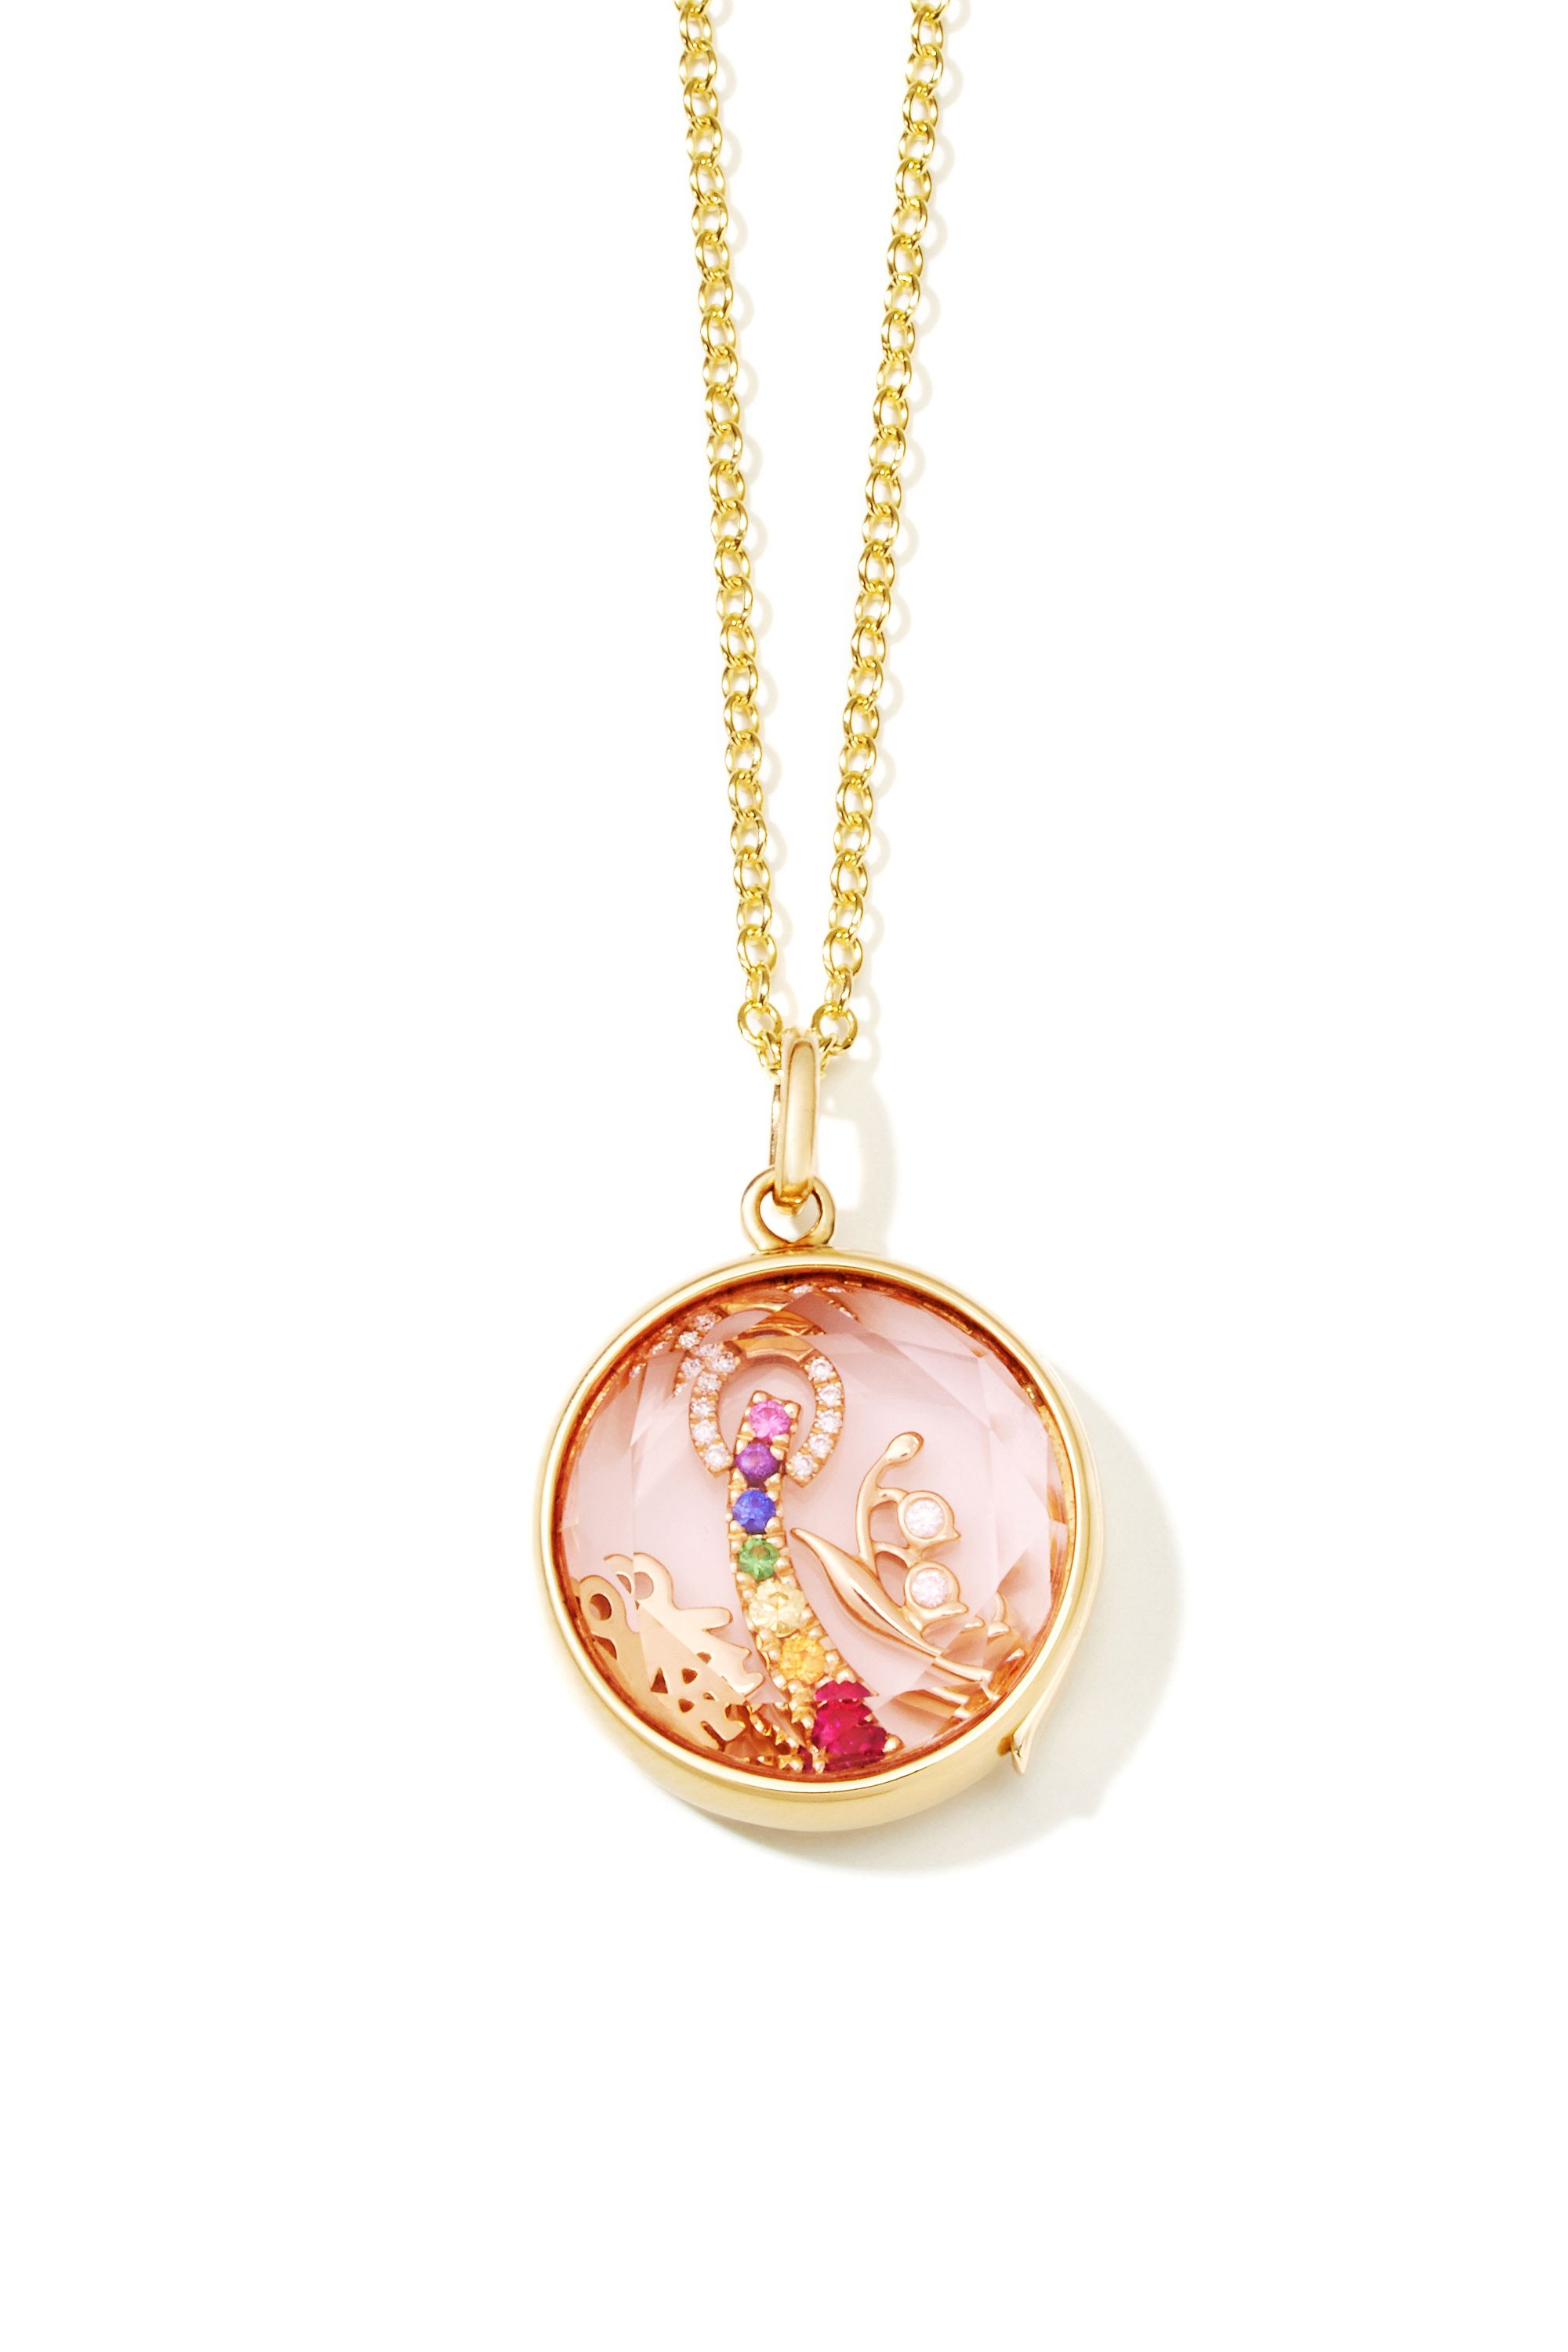 accessories elle investment jewelry locket photo lockets best pendant fashion